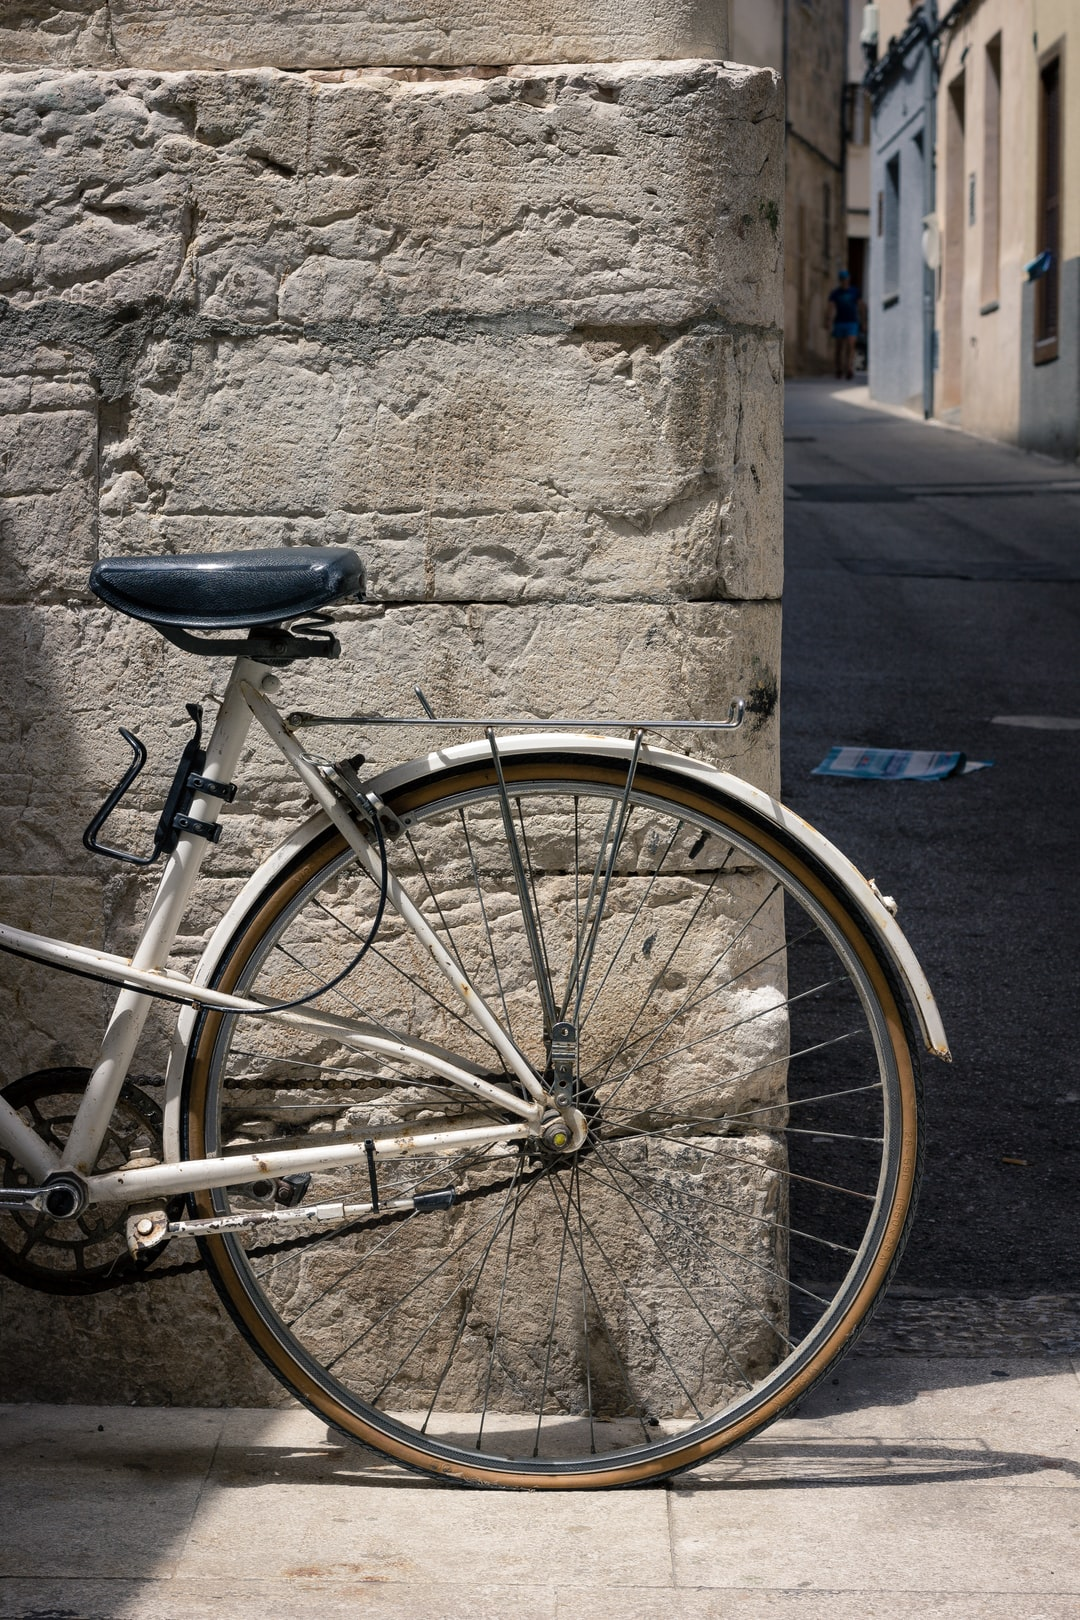 Walking through Alcudia old town during siesta time, the streets near empty and the shutters on home closed. No cars parked, taking up valuable space, however this bike was placed here, no padlock or not chained to anything. Simply placed against a sandstone wall.